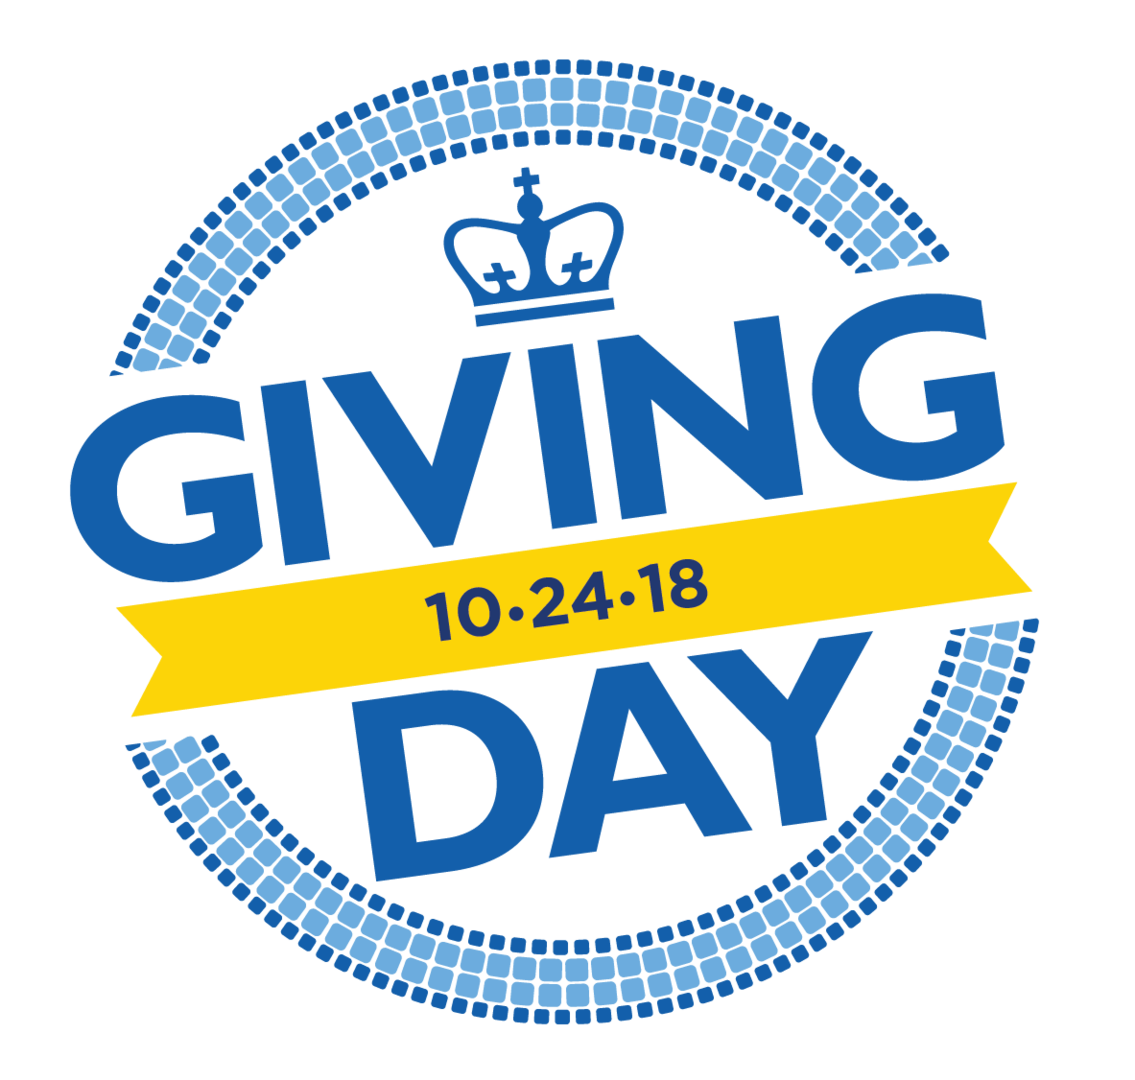 CU_Giving_Day_Logo_2018_CU_Giving_Day_Logo_2018.png